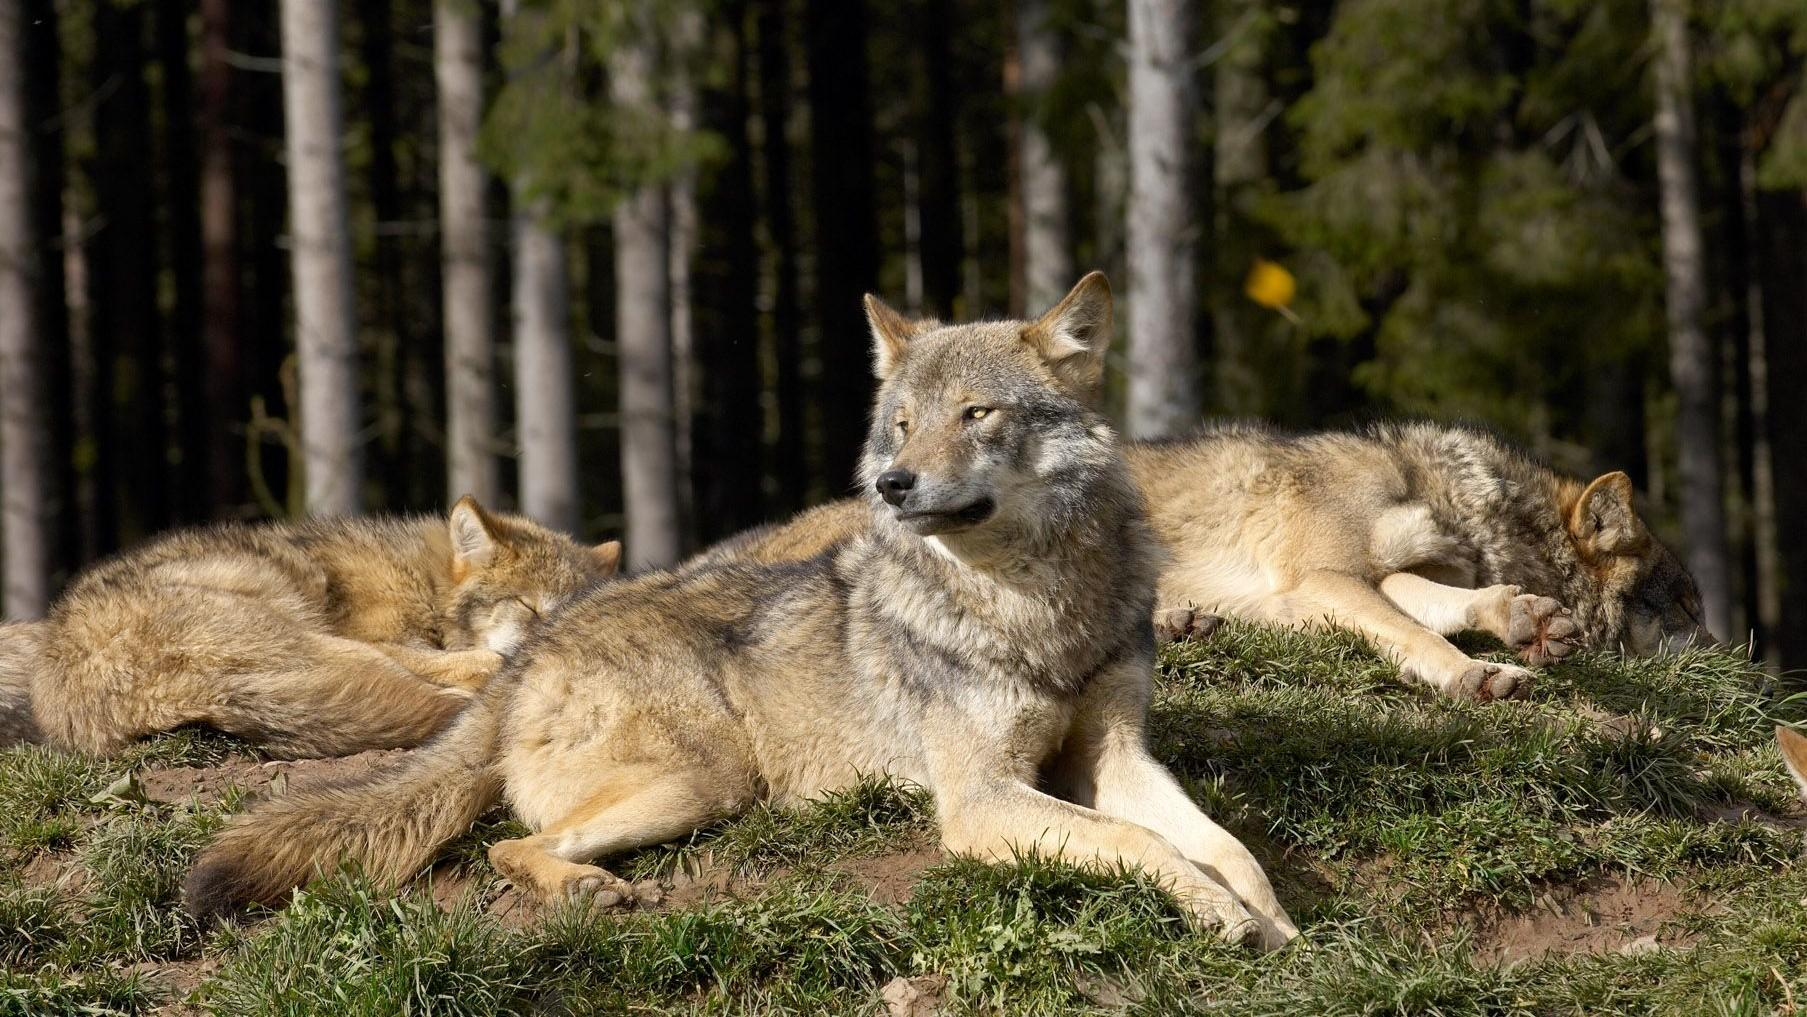 The wolf also known as Canis lupus